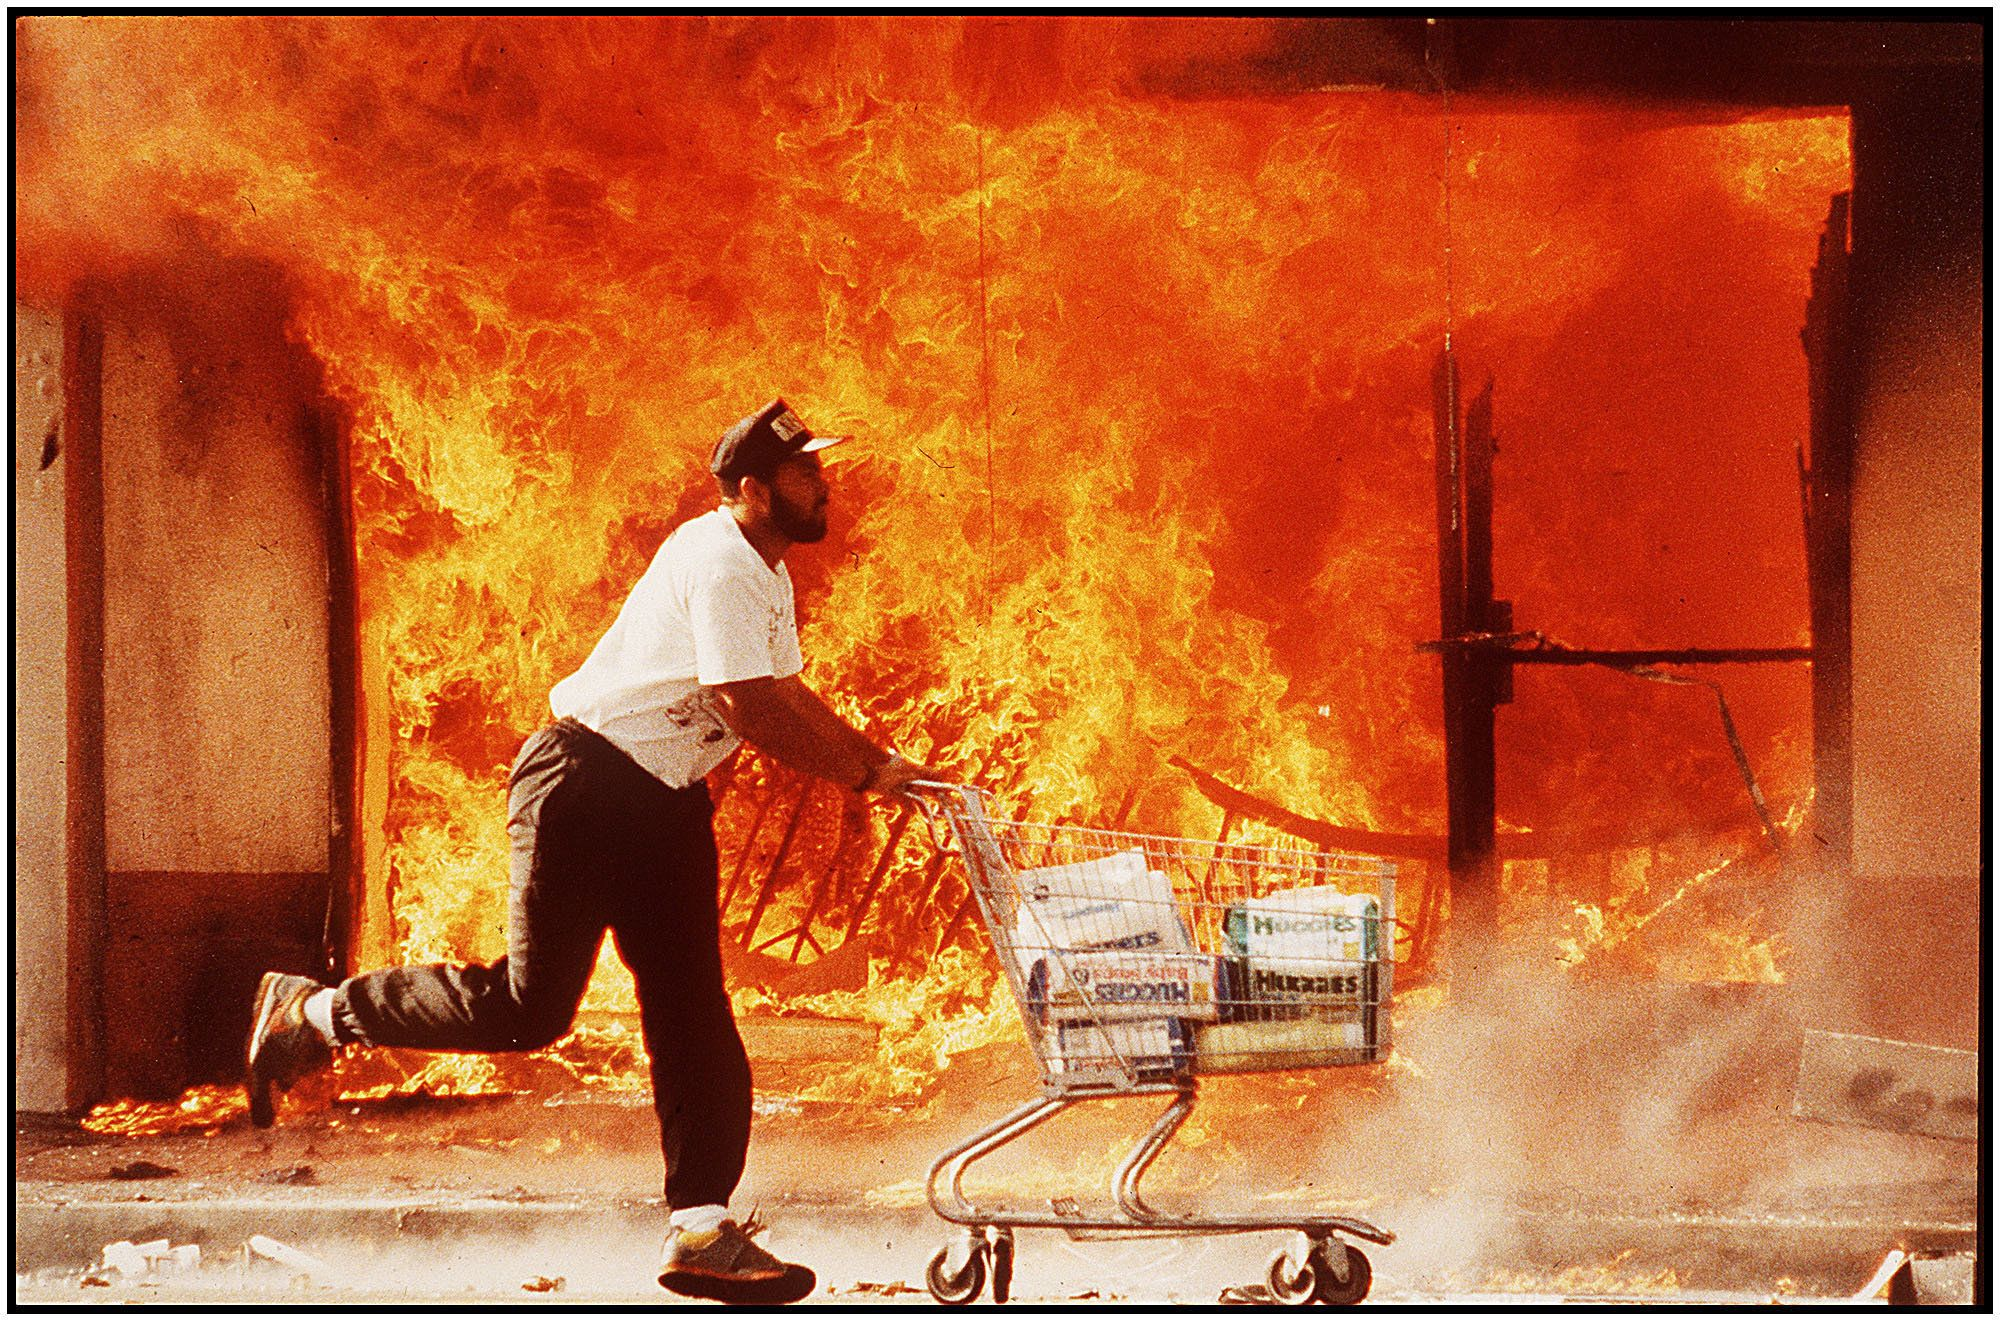 """""""The second day of the riots on 3rd street, I photographed this guy running past a burning Jon's market with a shopping cart"""